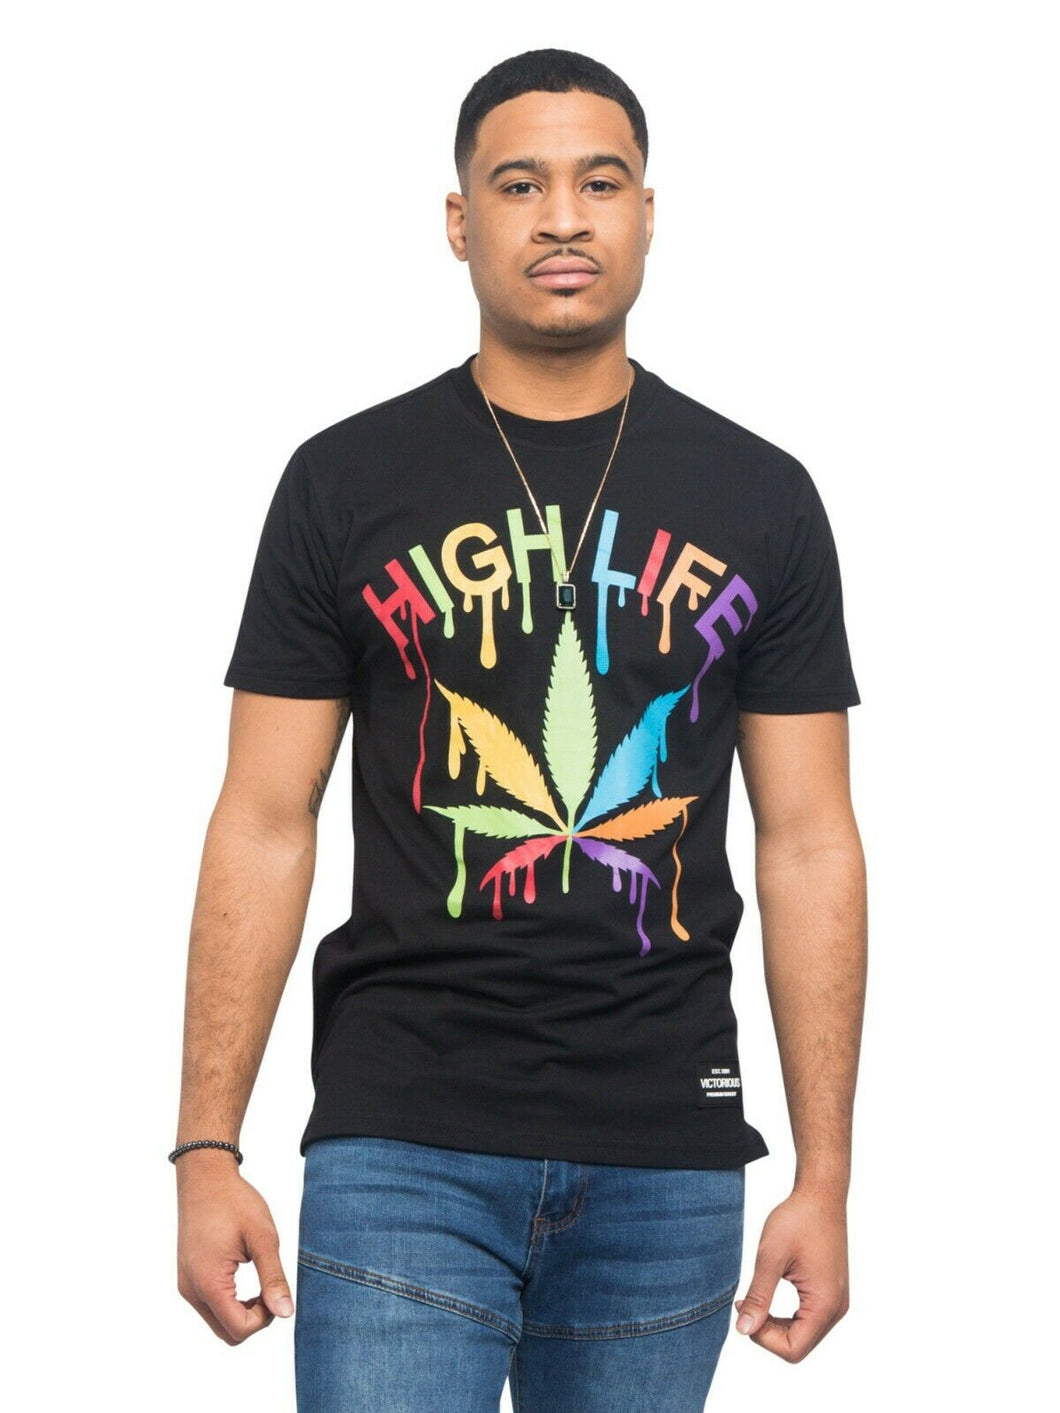 NWT Men's Victorious Colorful High Life T-Shirts Tee S ~ 5XL - TS7339EY